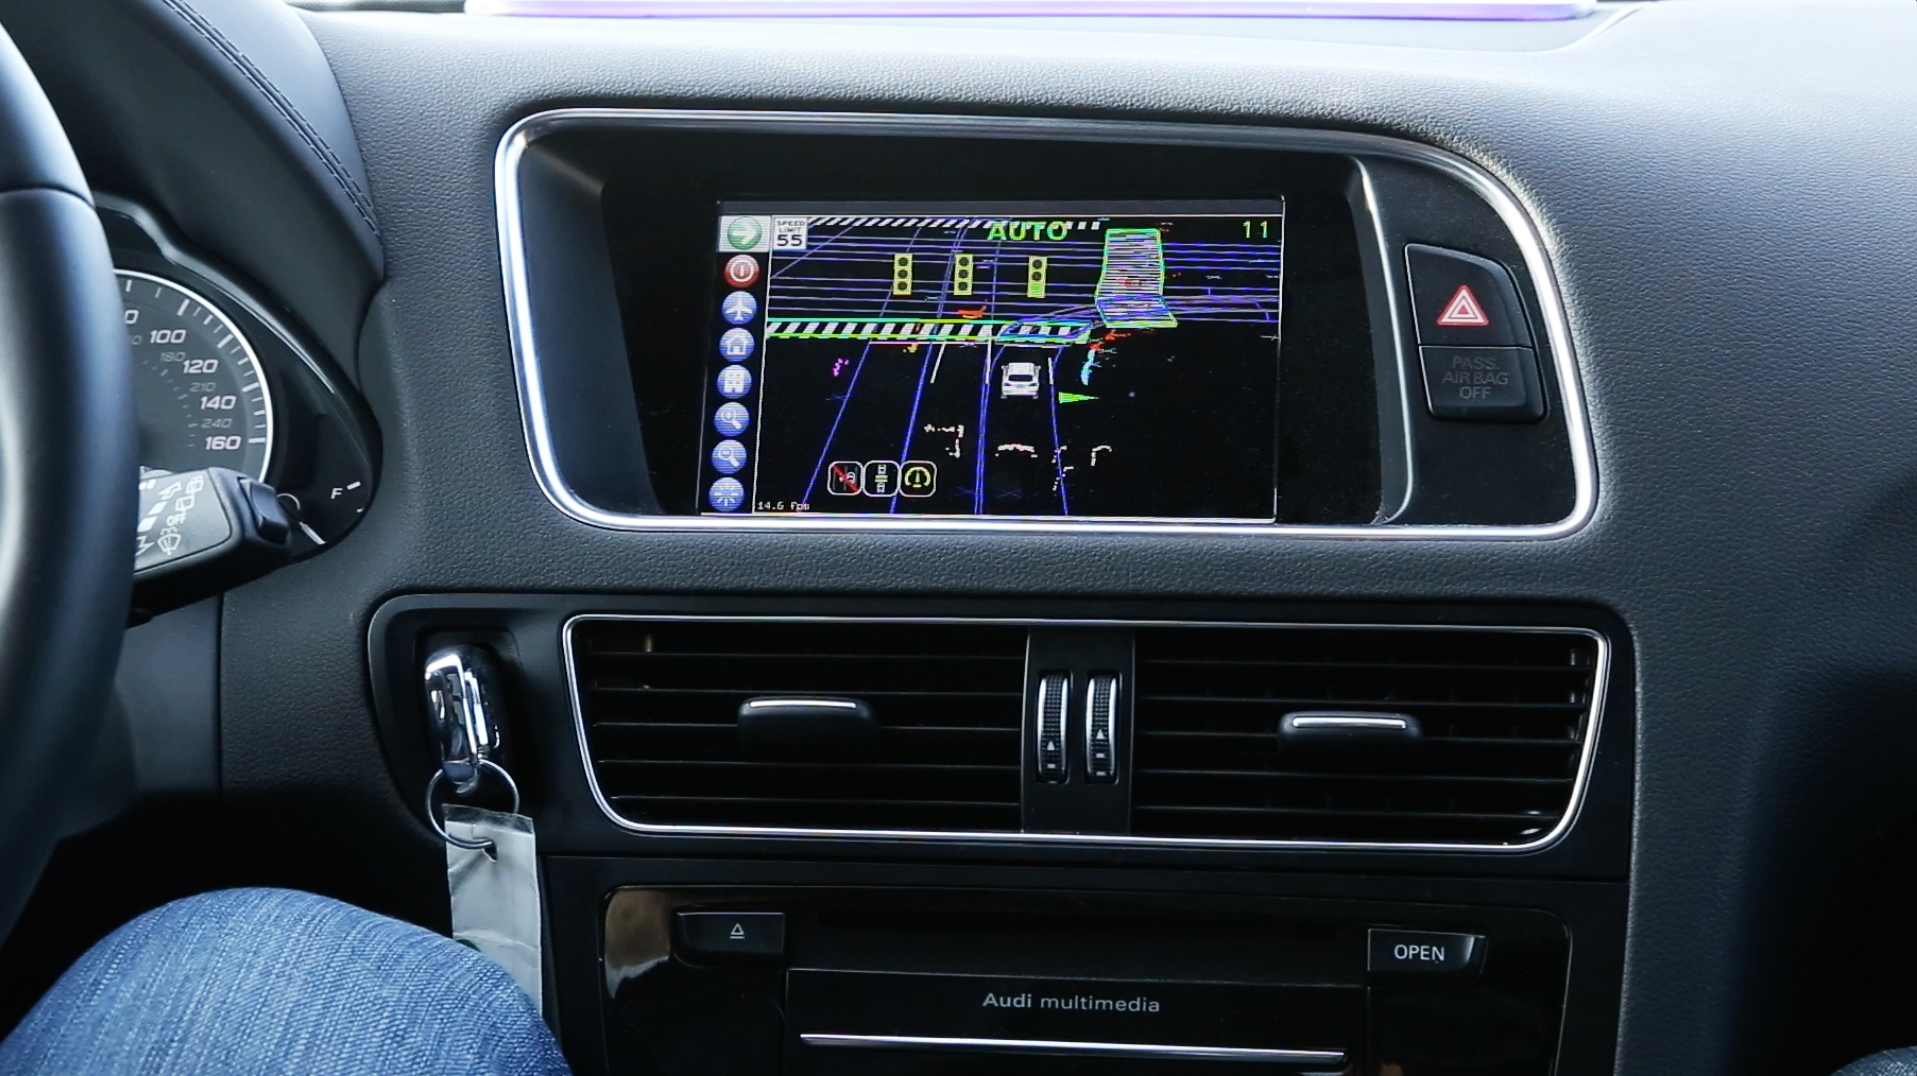 Delphis-automated-driving-vehicle_HMI-centerstack